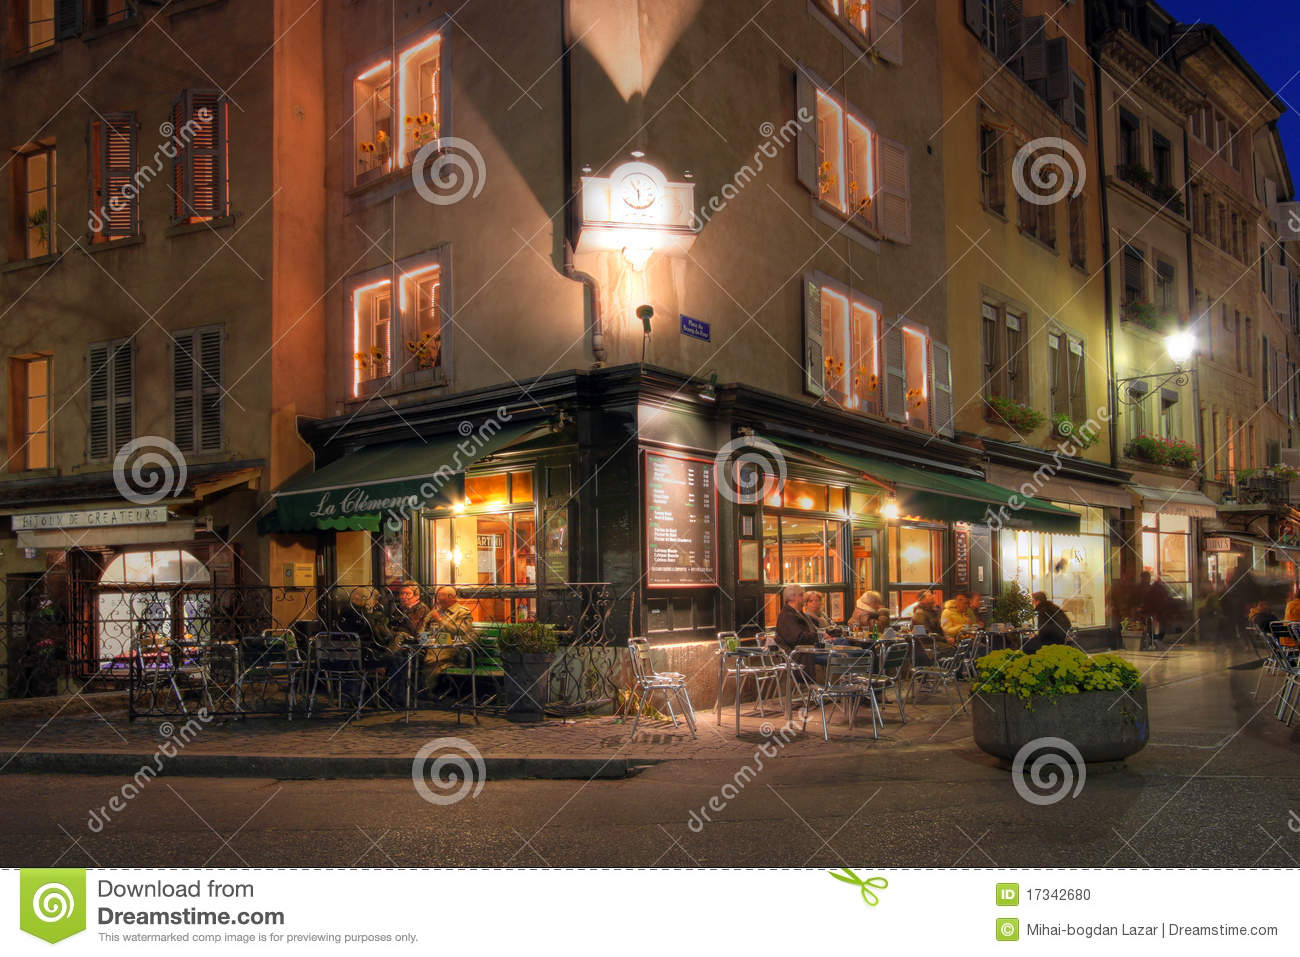 outdoor bar table and chairs kids beach chair with adjustable umbrella corner coffee-shop in geneva, switzerland editorial image - image: 17342680